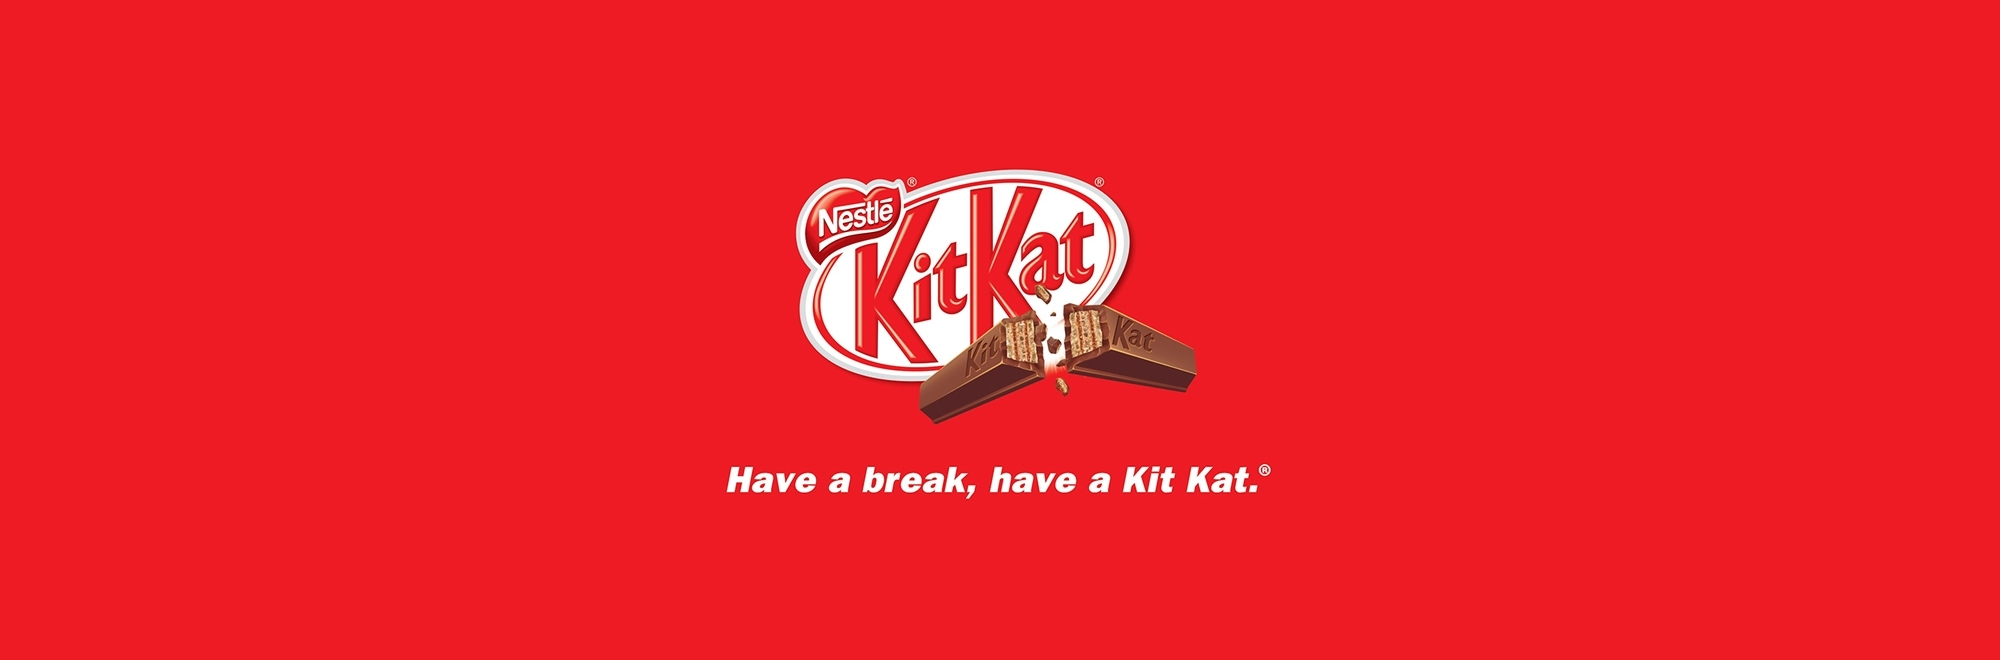 Creative Classic: Is 'Have a break, have a Kit Kat' the best strapline ever written?